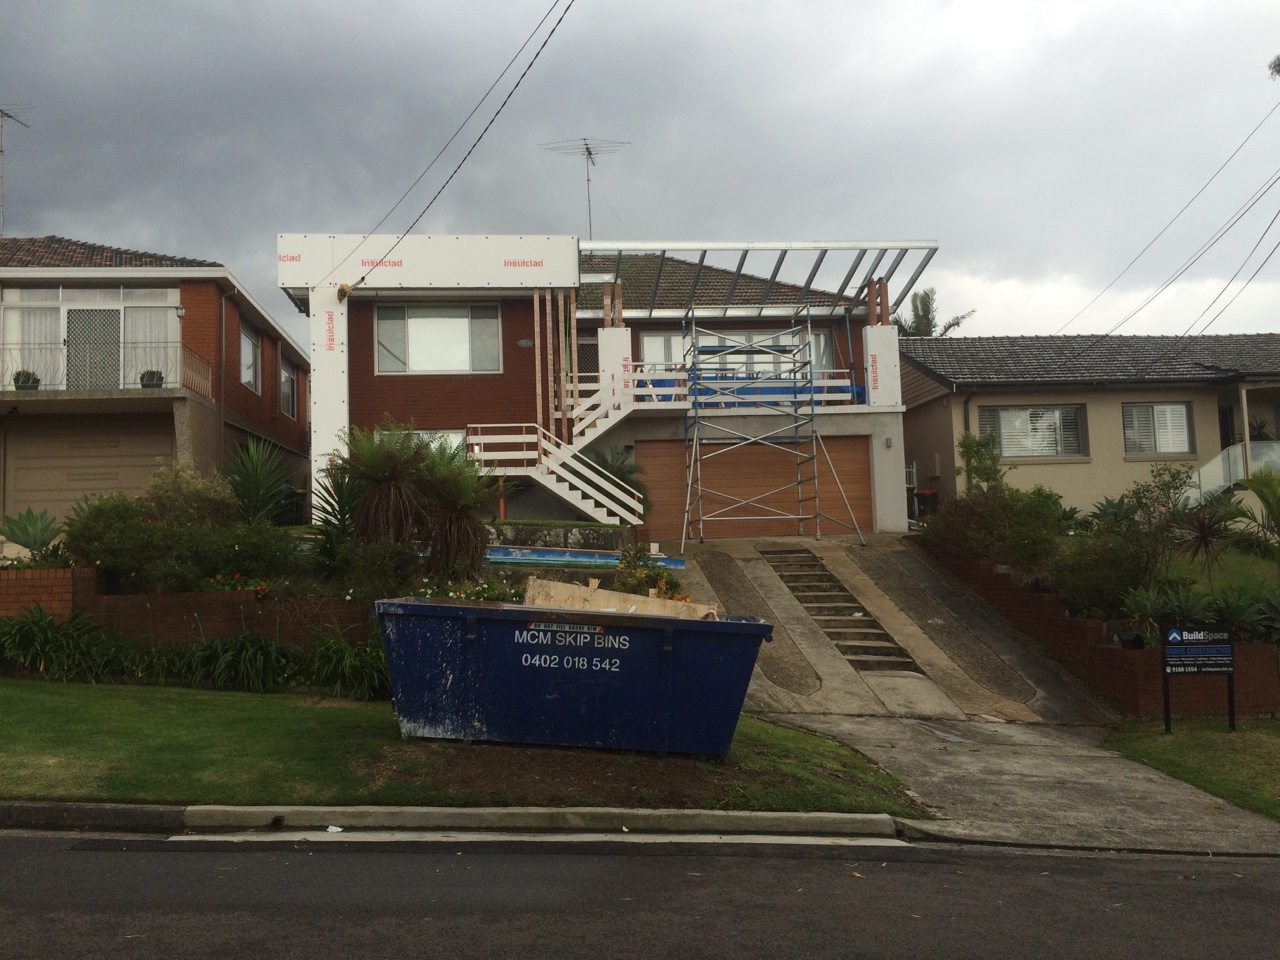 House renovation underway using Boxspan for awning frame